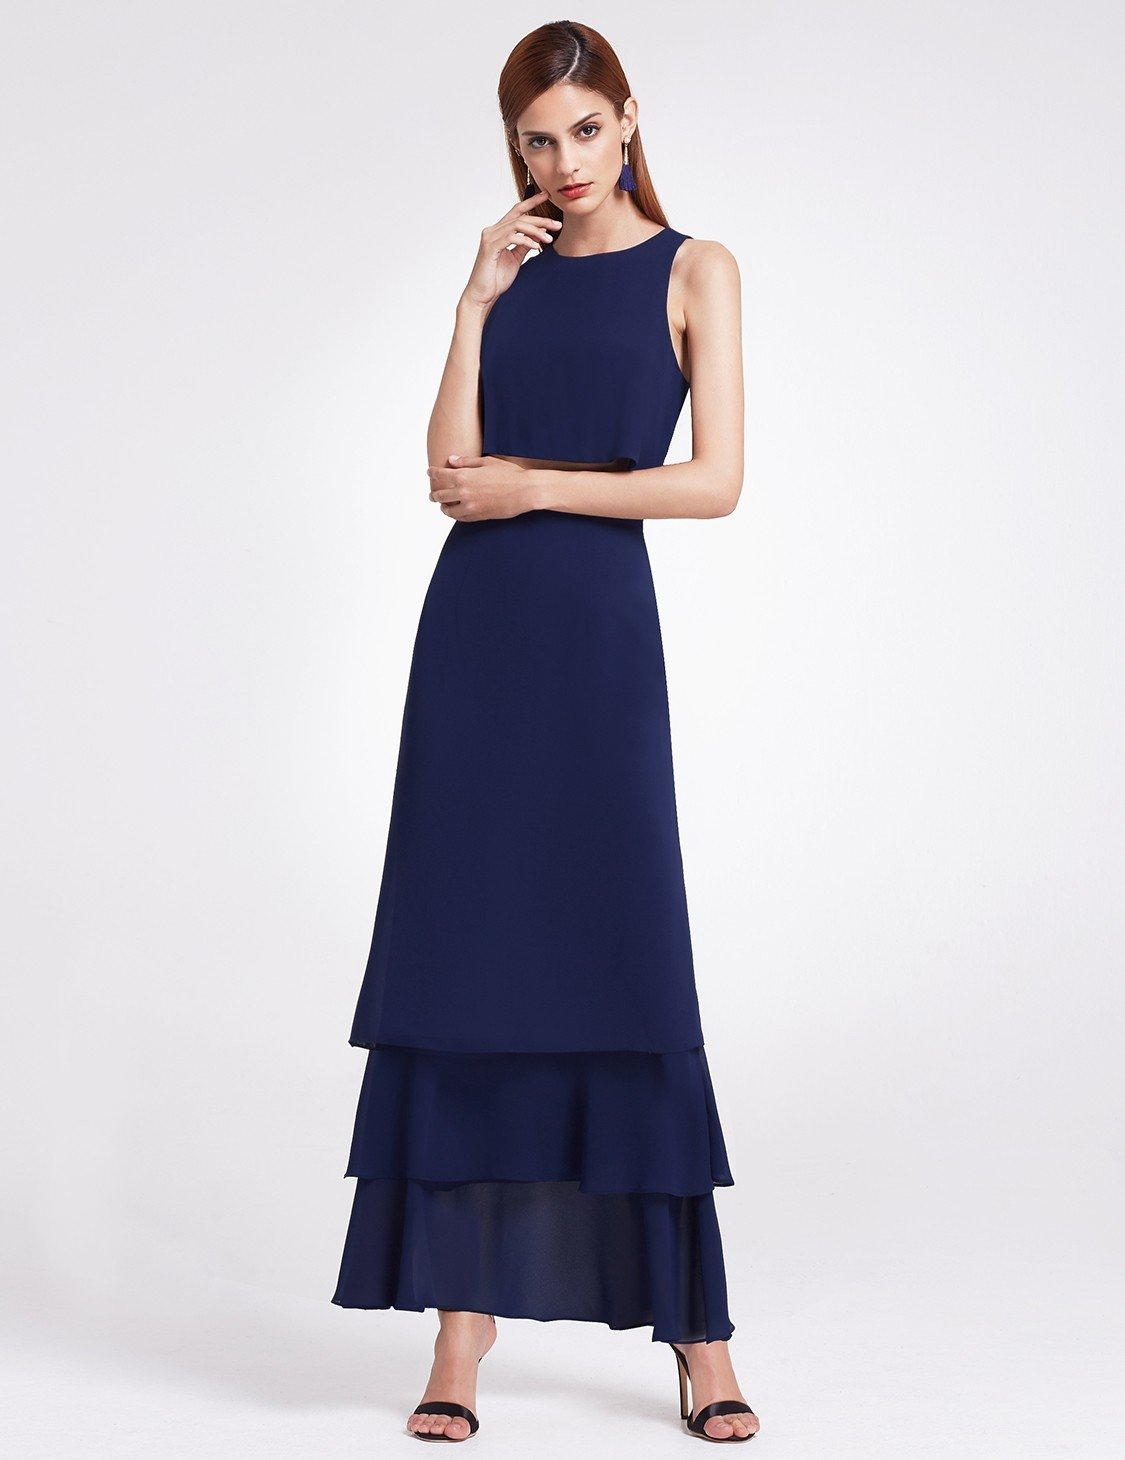 Two Piece Maxi Skirt Top Navy Blue Bridesmaid Dress